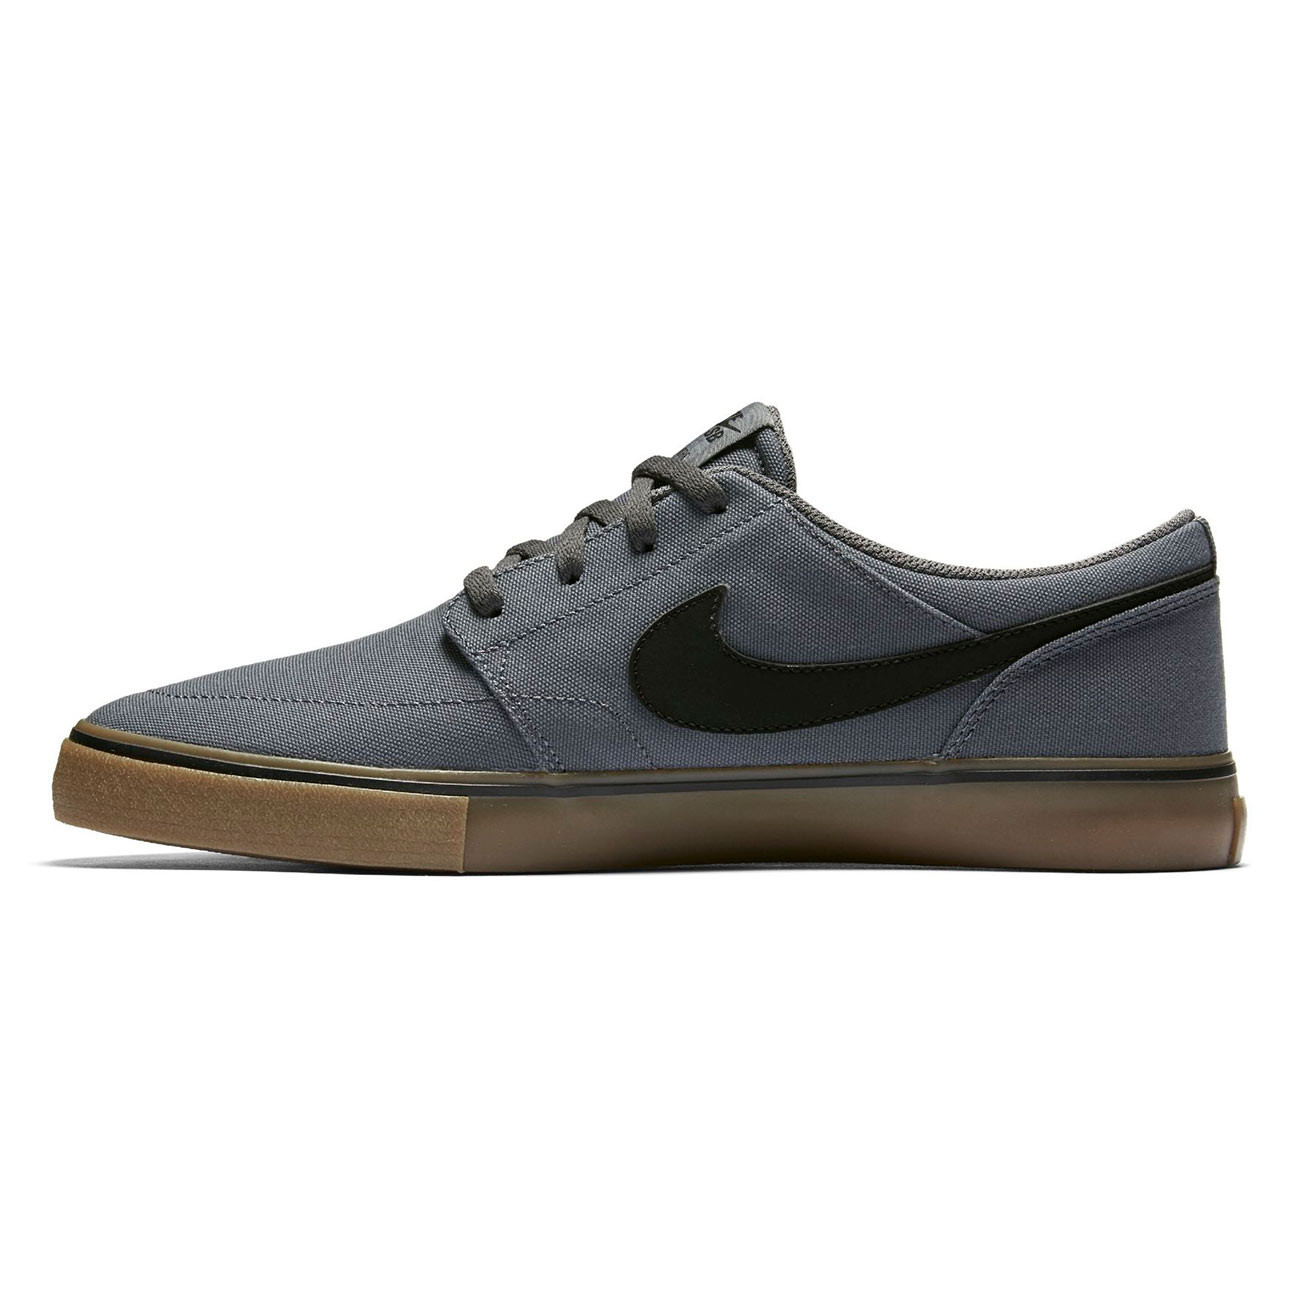 sneakers nike sb solarsoft portmore ii dark grey black gum light brown snowboard zezula. Black Bedroom Furniture Sets. Home Design Ideas